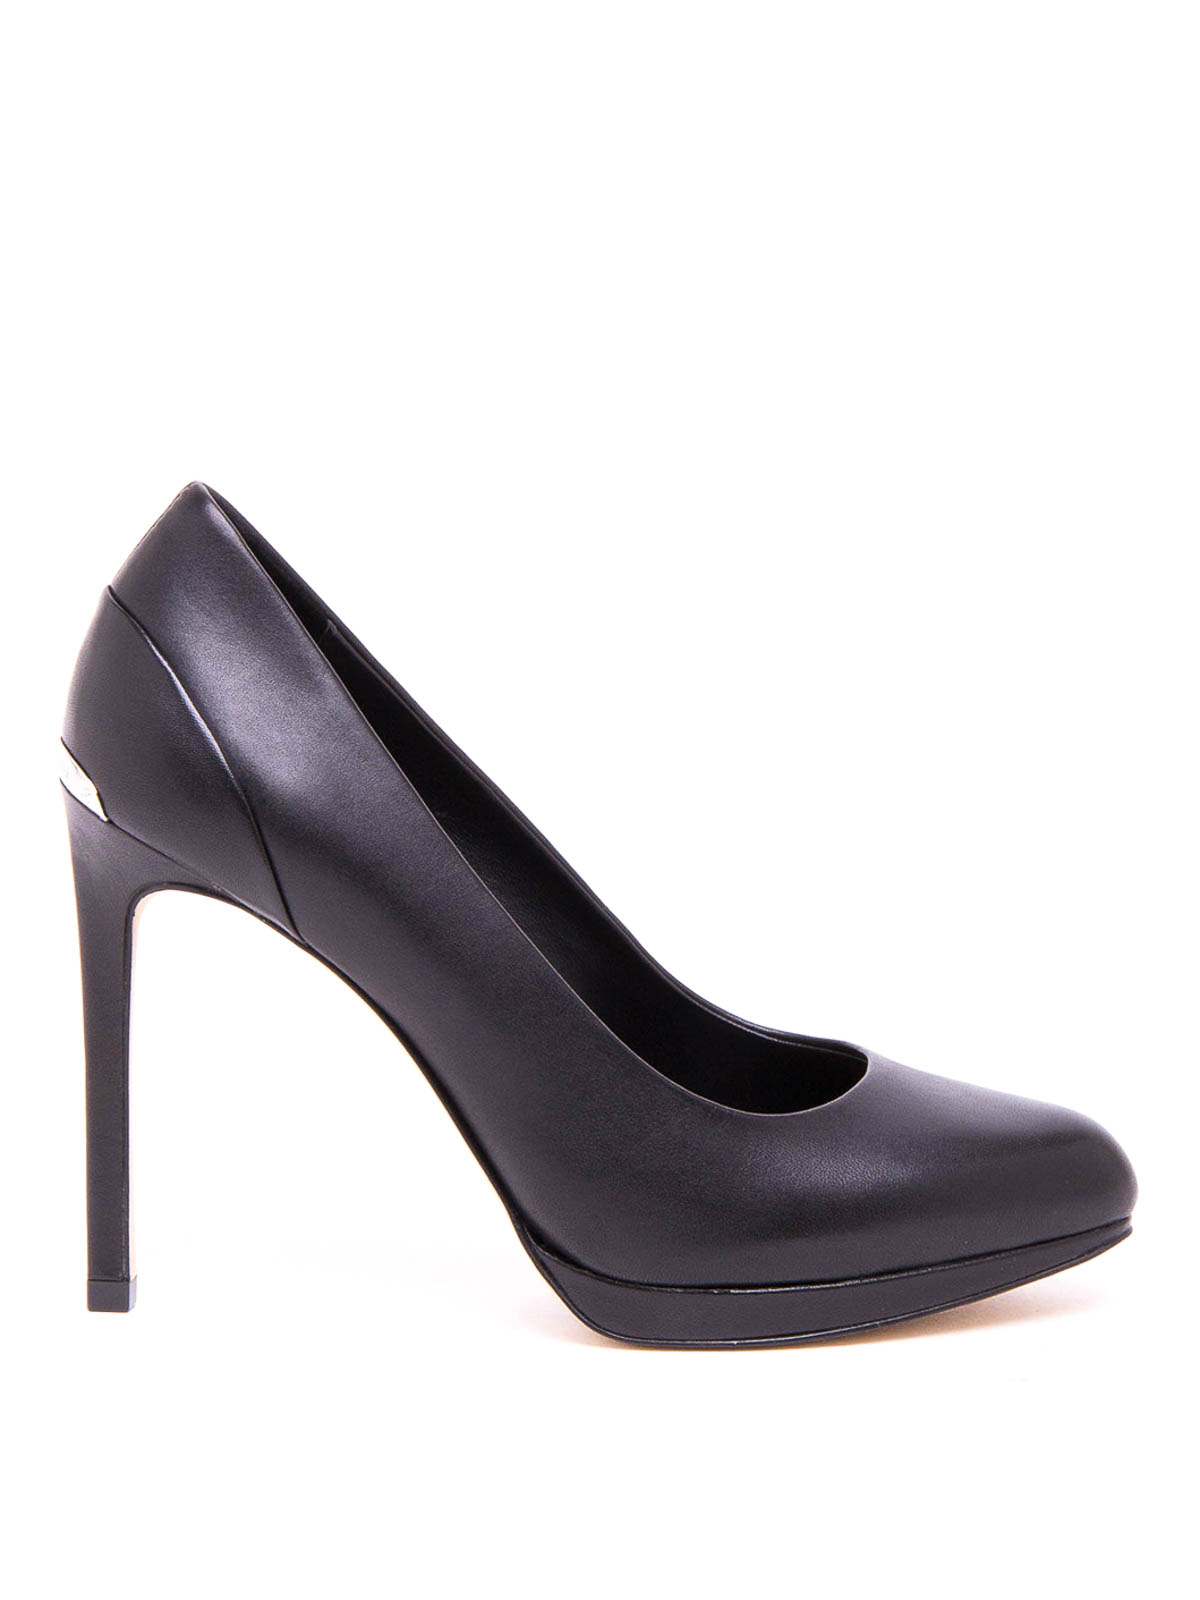 yasmin smooth leather pumps by michael kors court shoes. Black Bedroom Furniture Sets. Home Design Ideas